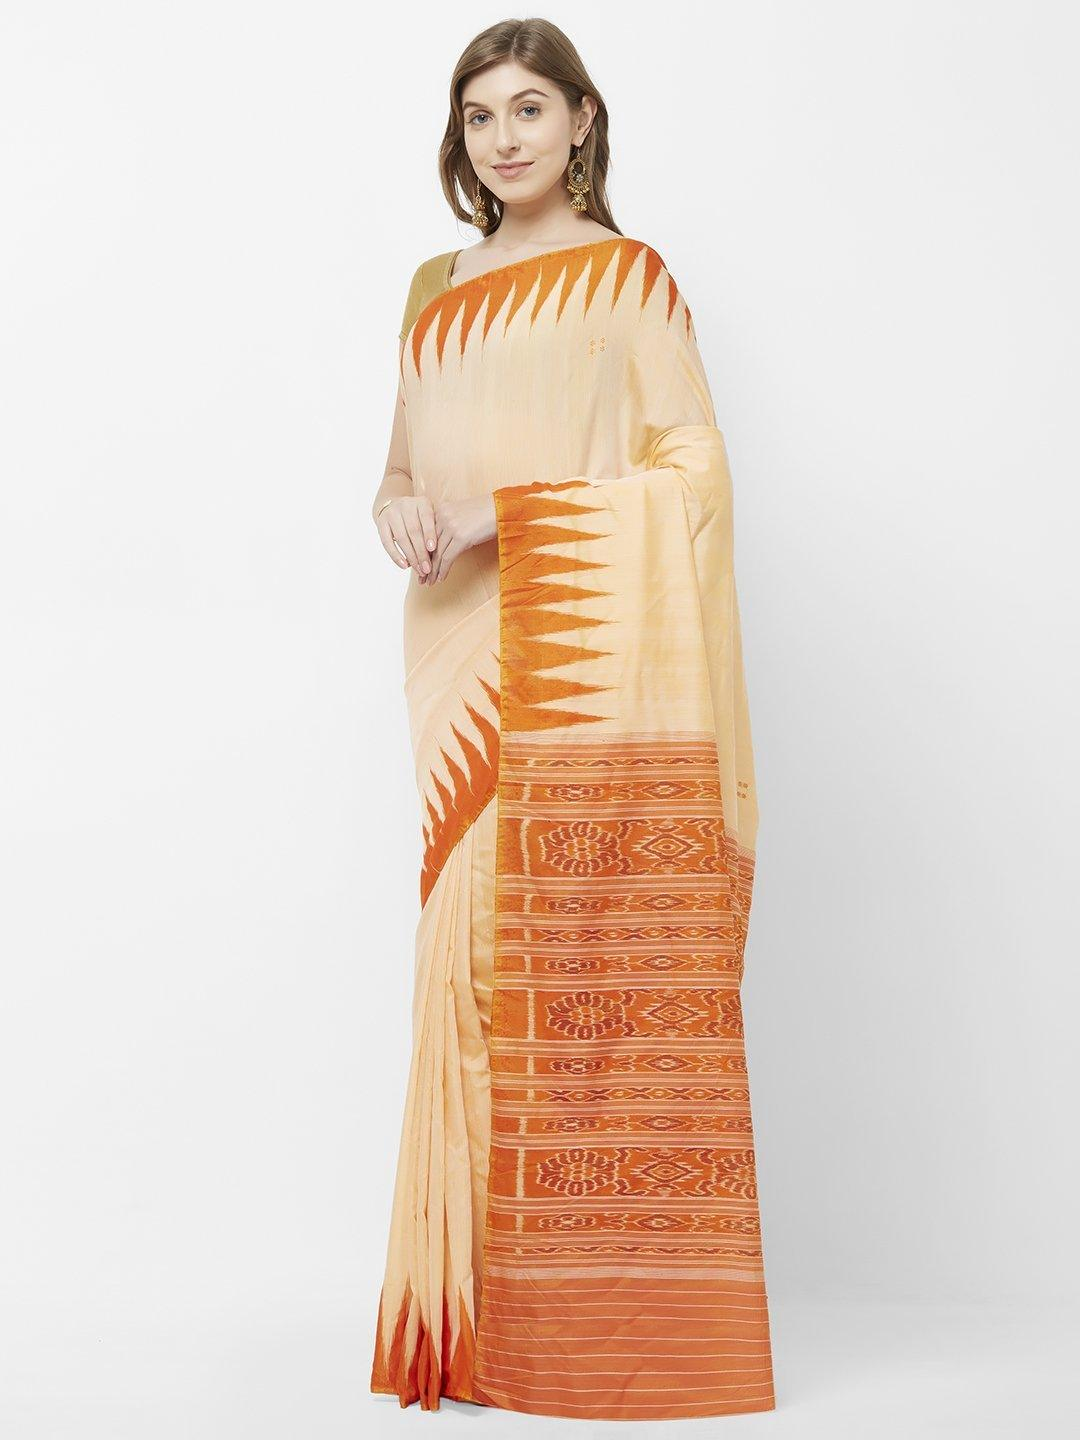 CraftsCollection.in - Peach Orange Odisha Cotton Sambalpuri Saree